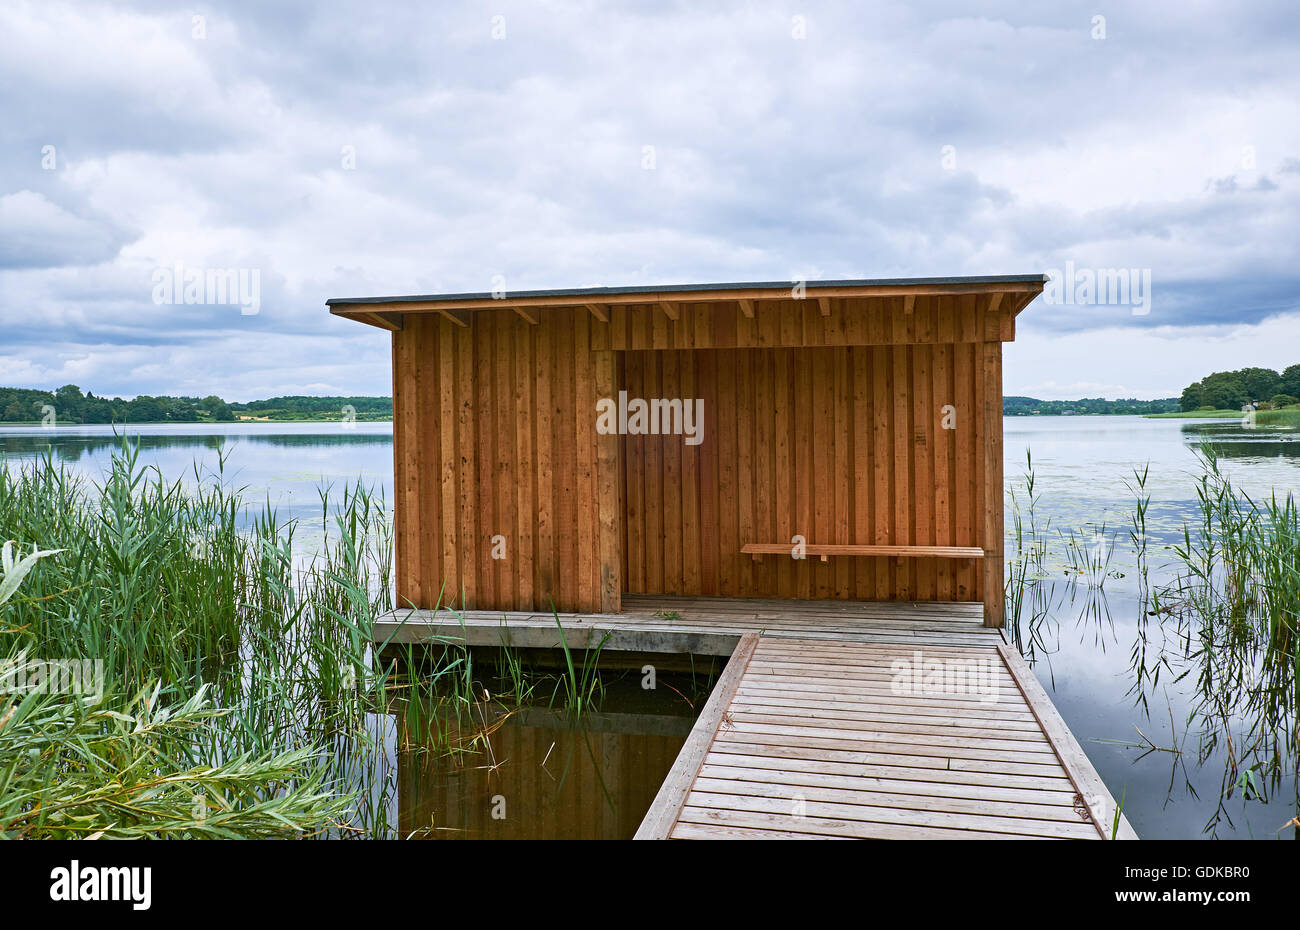 Birdwatch shelter made of wood, at the end of a wooden pier at the border of lake Sjaelsoe in Birkeroed, Denmark - Stock Image